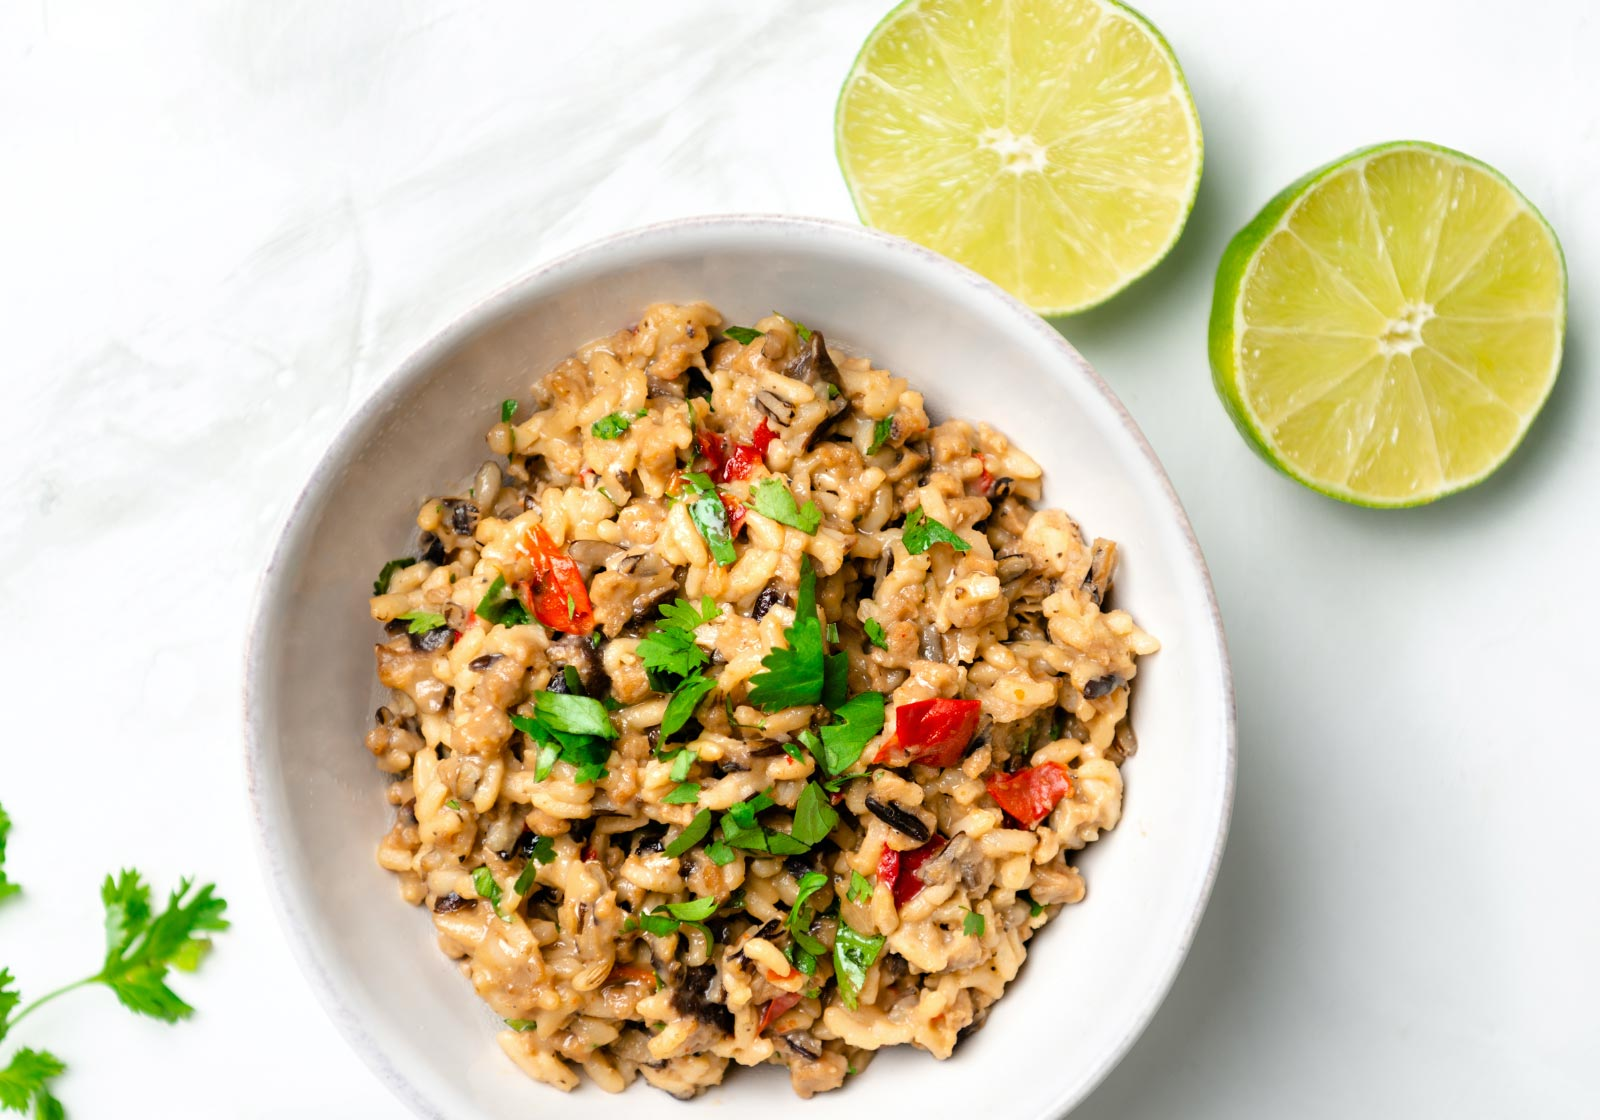 HMR Mushroom Risotto Entrée prepared with fresh cilantro and lime juice